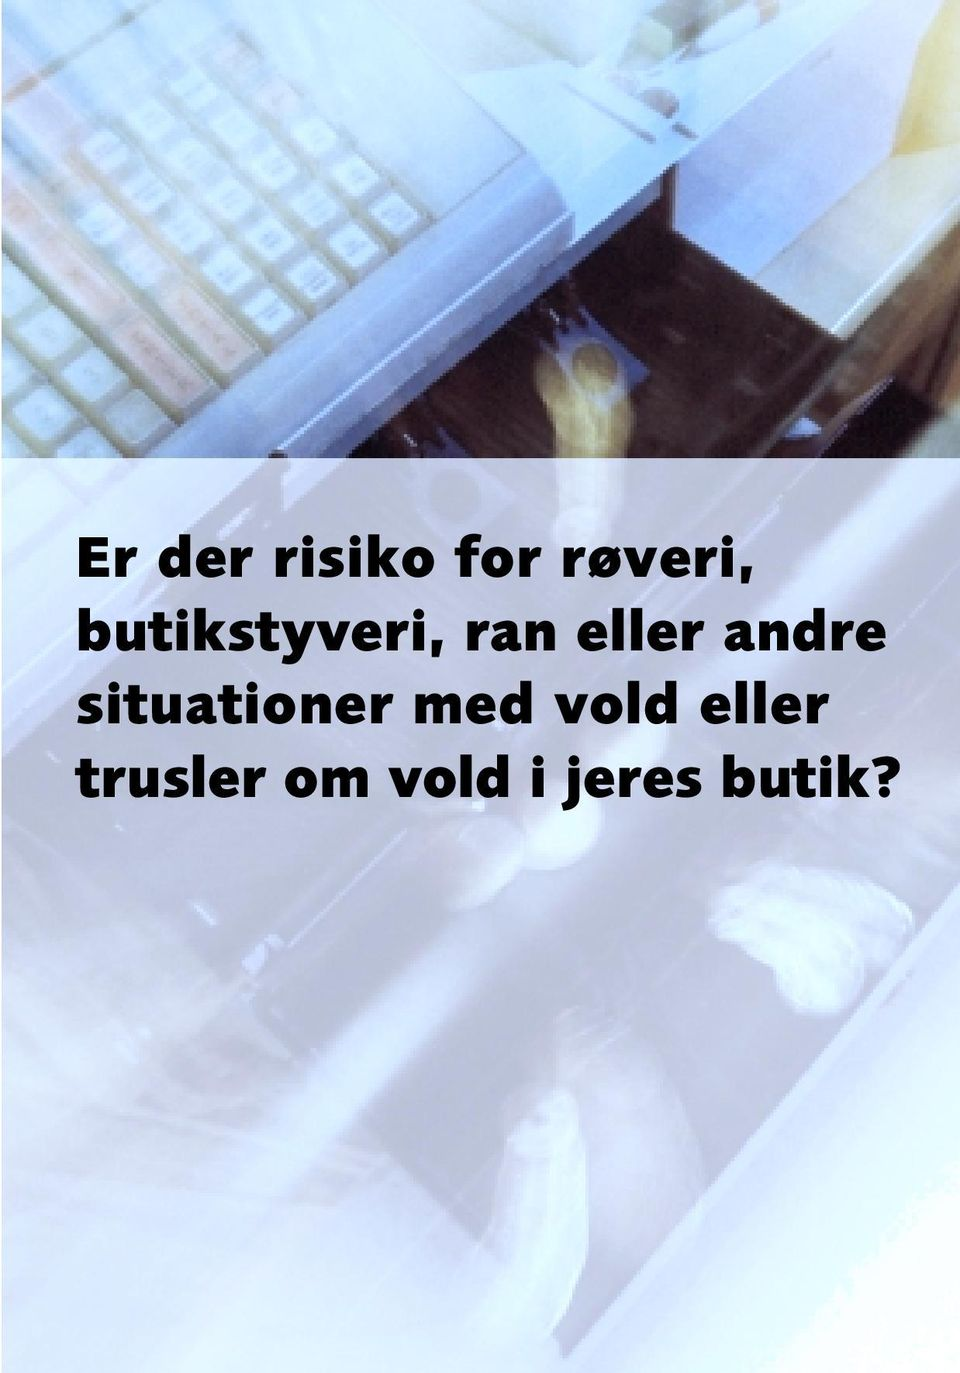 andre situationer med vold